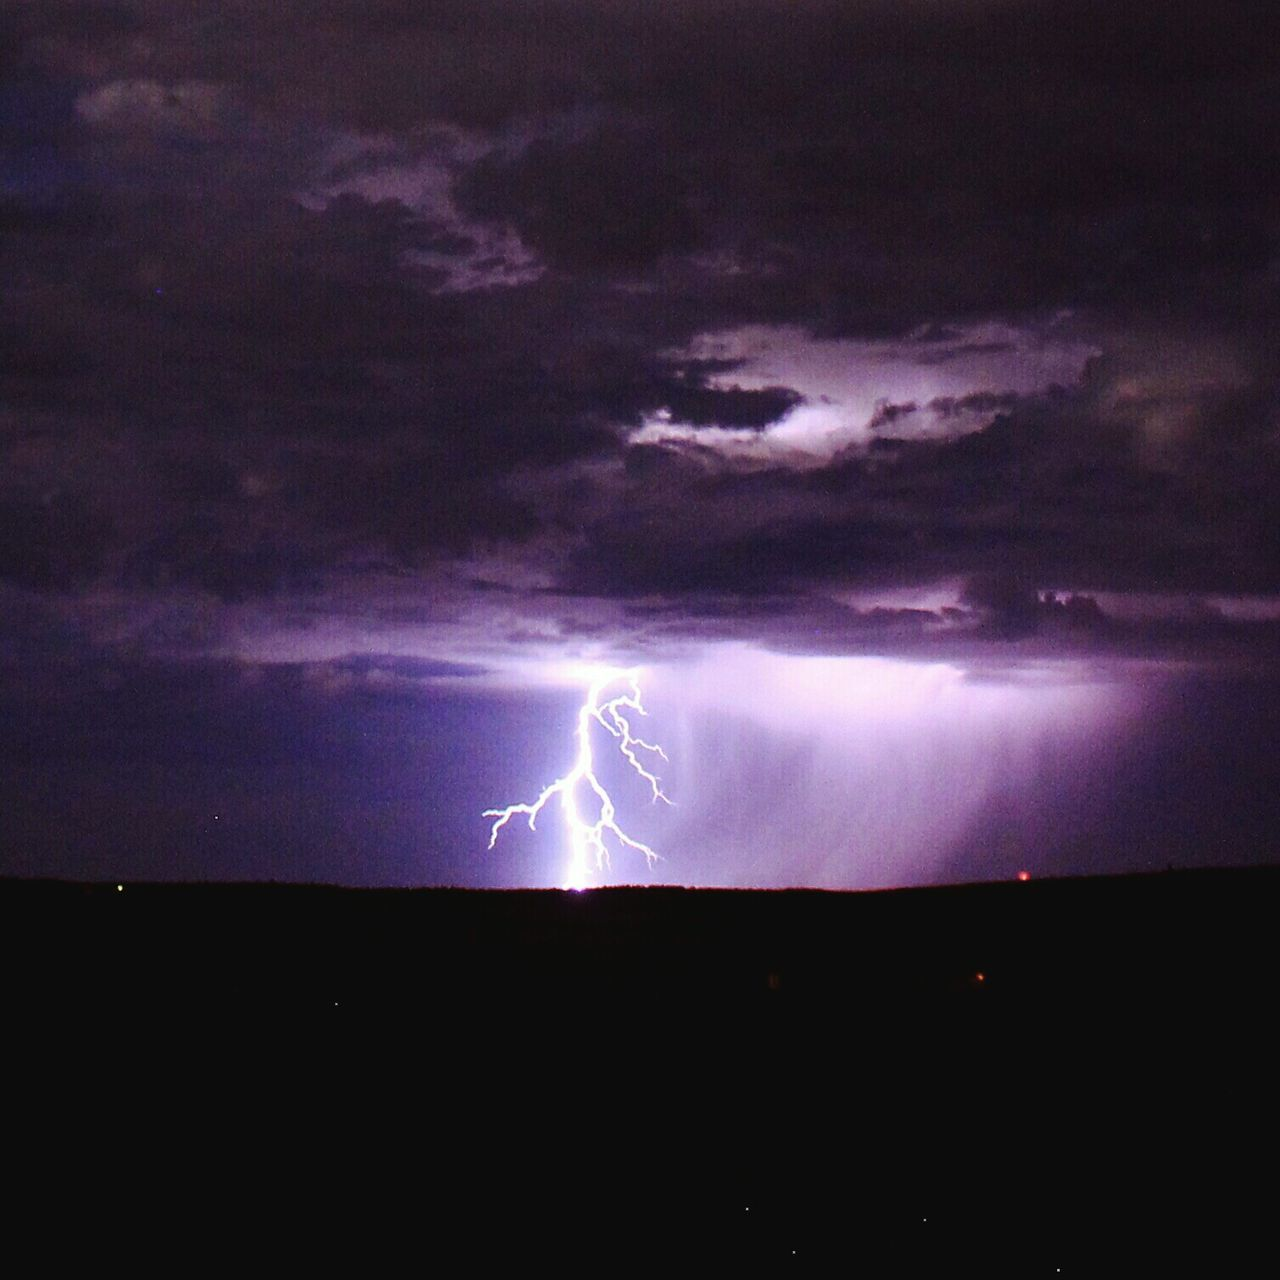 lightning, thunderstorm, forked lightning, power in nature, storm cloud, sky, cloud - sky, storm, dramatic sky, weather, atmospheric mood, nature, scenics, night, danger, beauty in nature, dark, landscape, no people, silhouette, outdoors, illuminated, moon, horizon over water